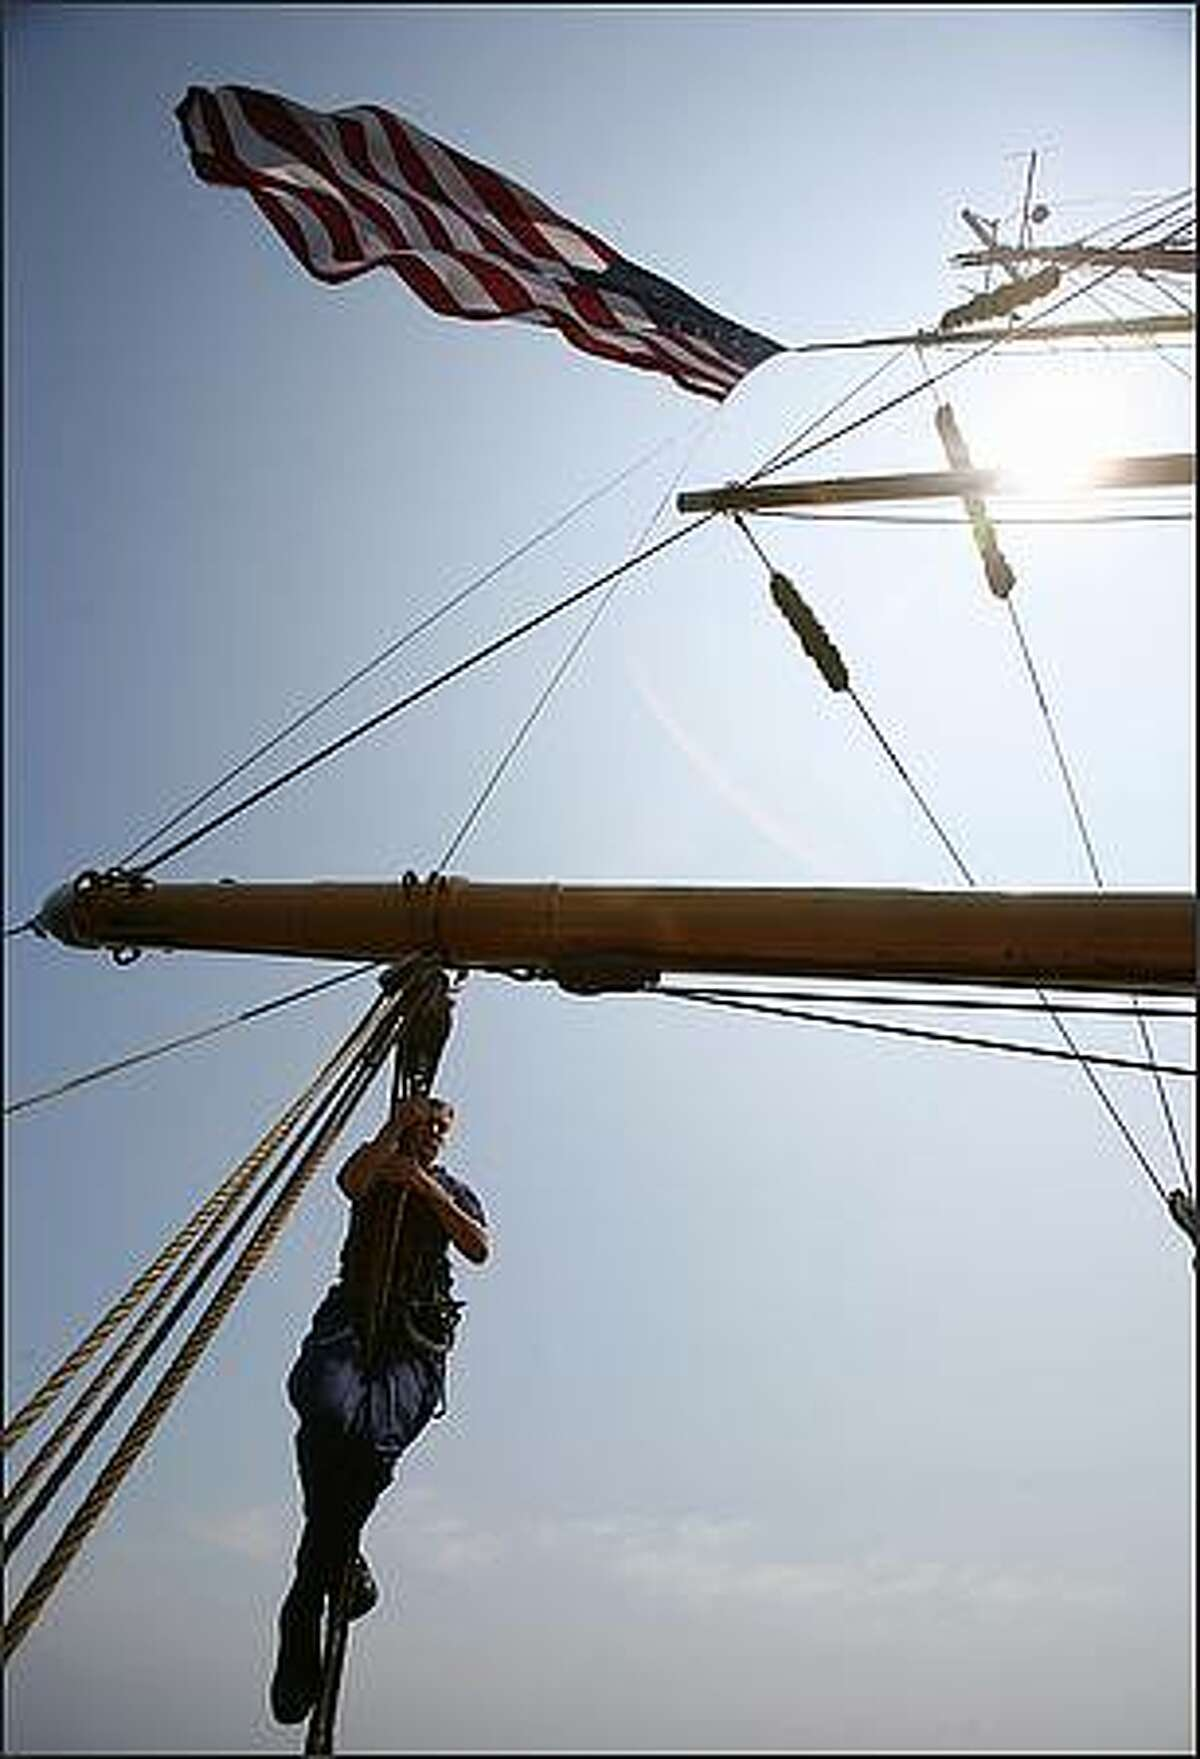 Member of the Coast Guard Sharon Mezulis climbs after hoisting the U.S. flag aboard the U.S. Coast Guard Barque Eagle.